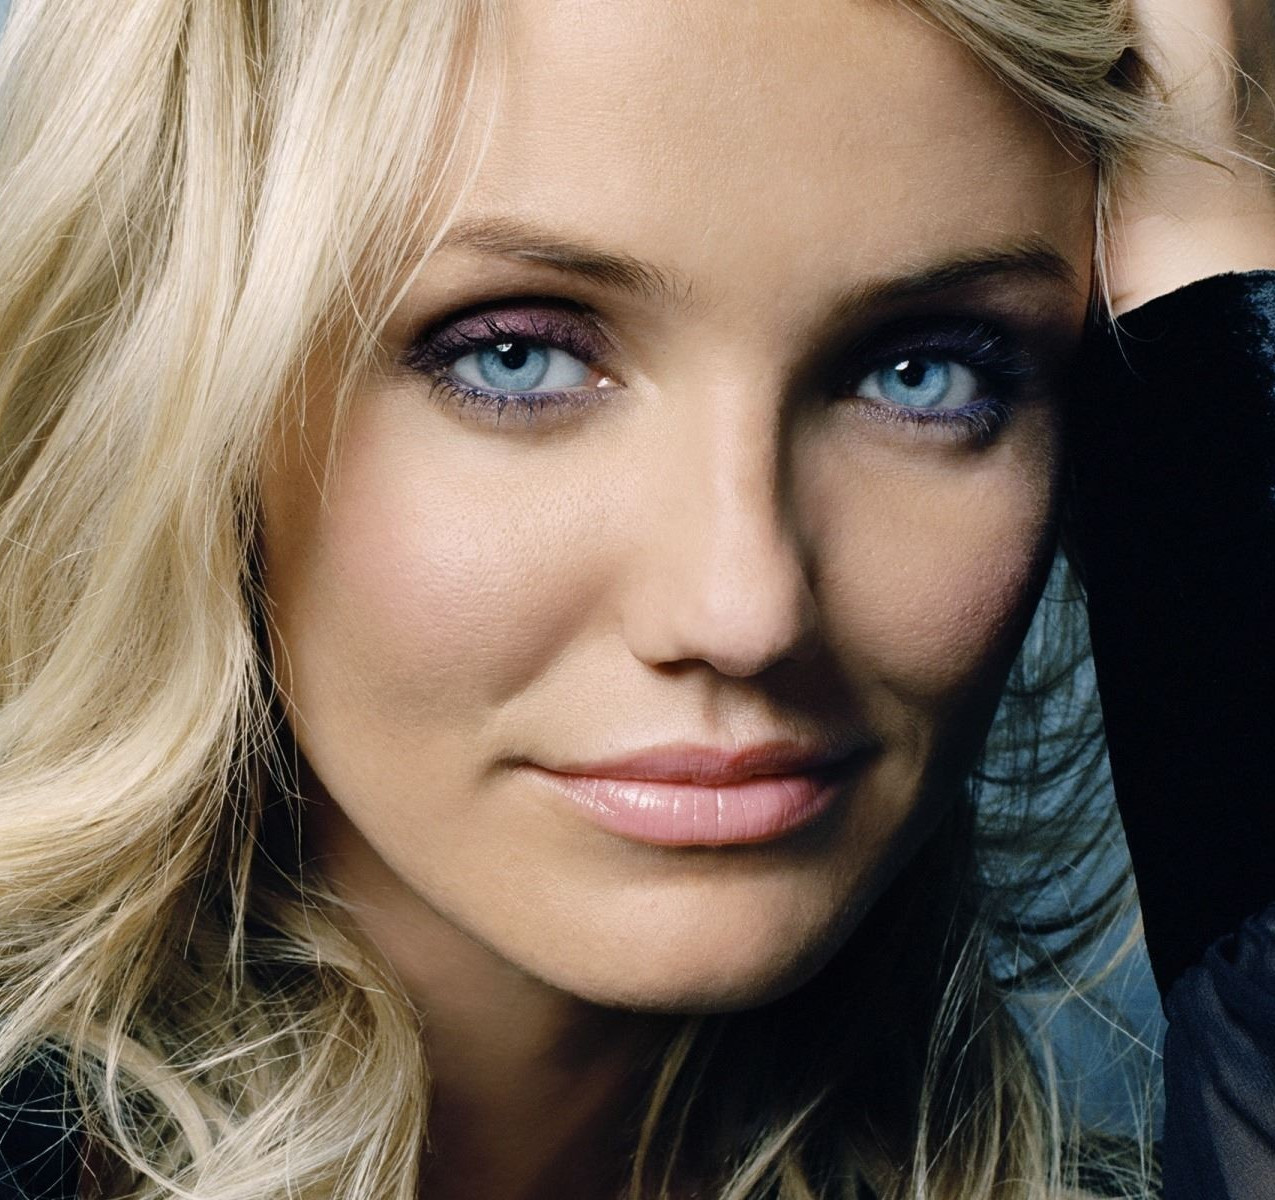 cameron-diaz-purple-eye-makeup-1